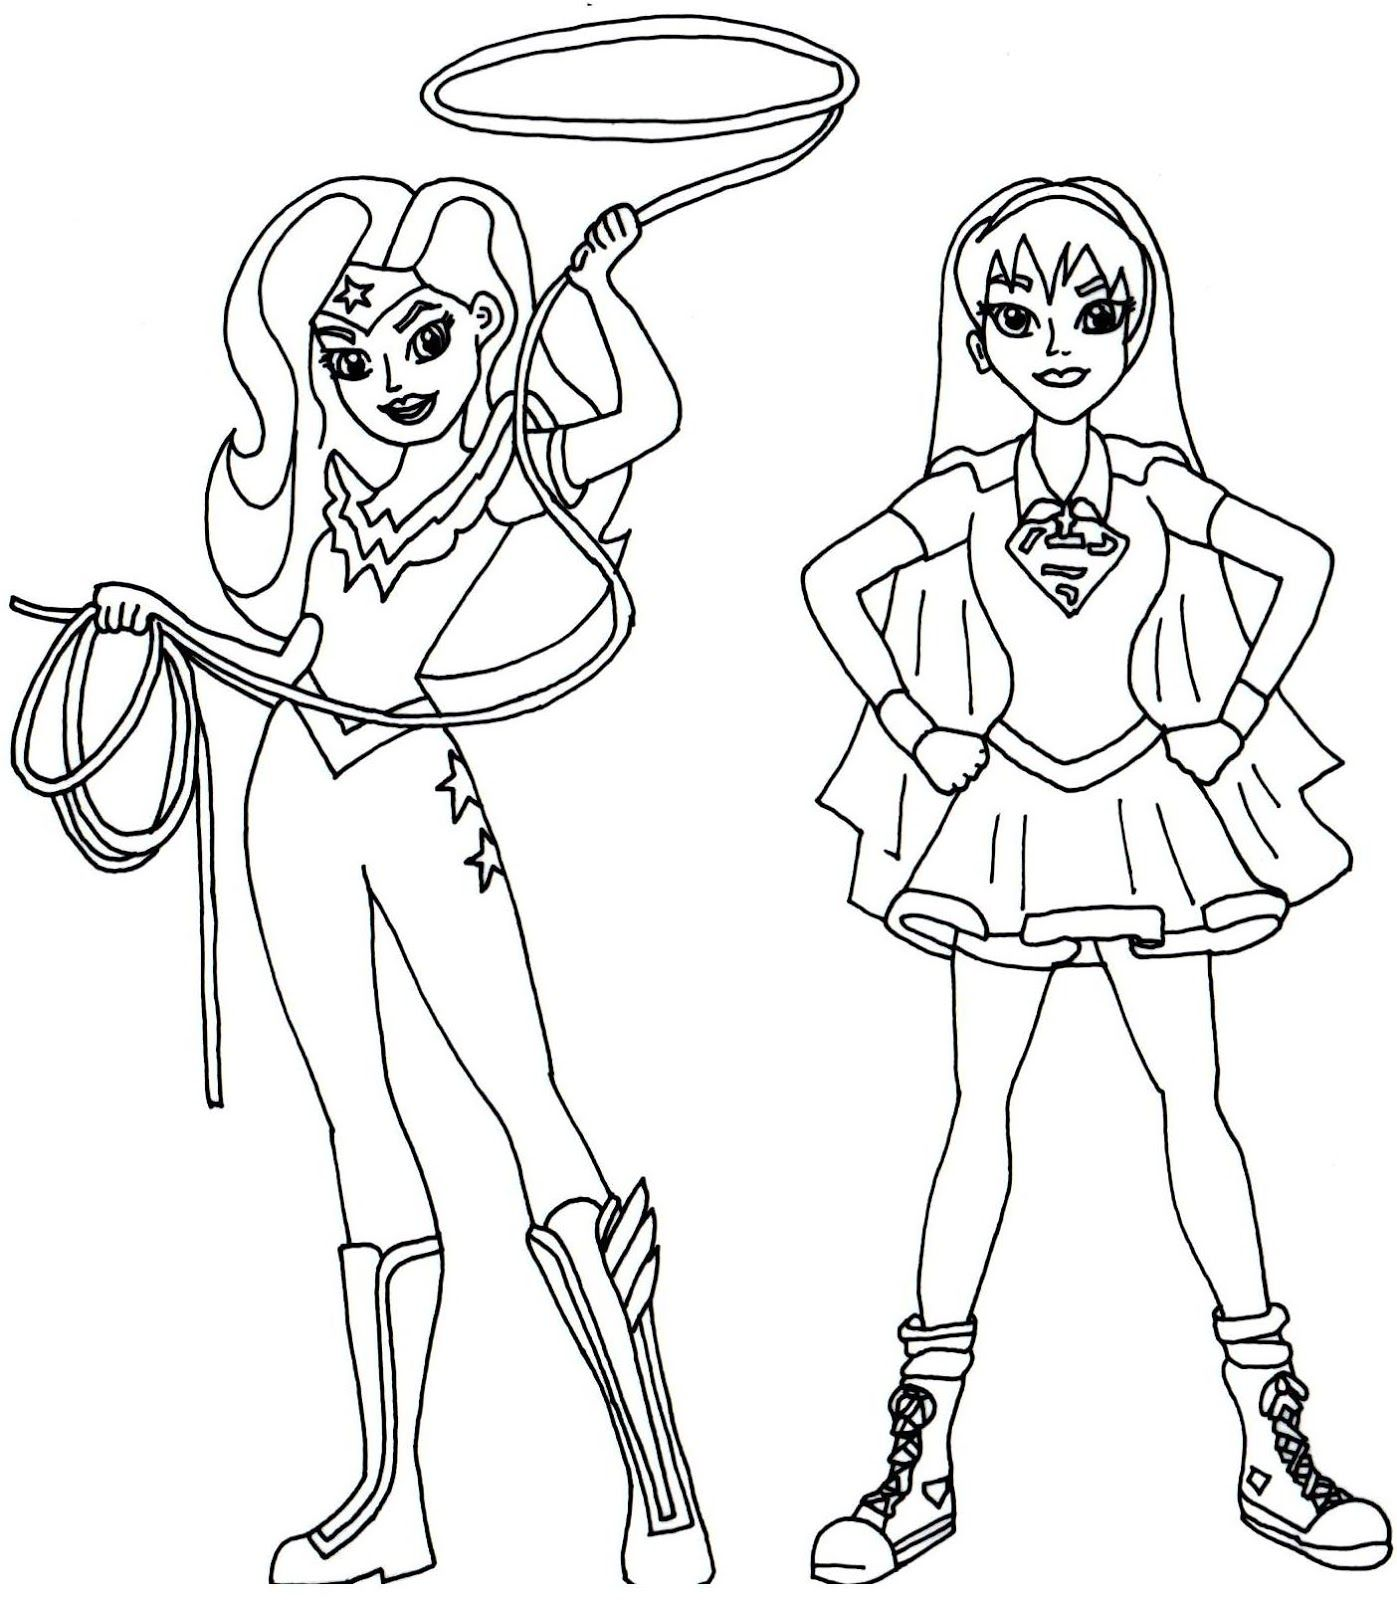 Free Printable Super Hero High Coloring Page For Wonder Woman And Supergirl